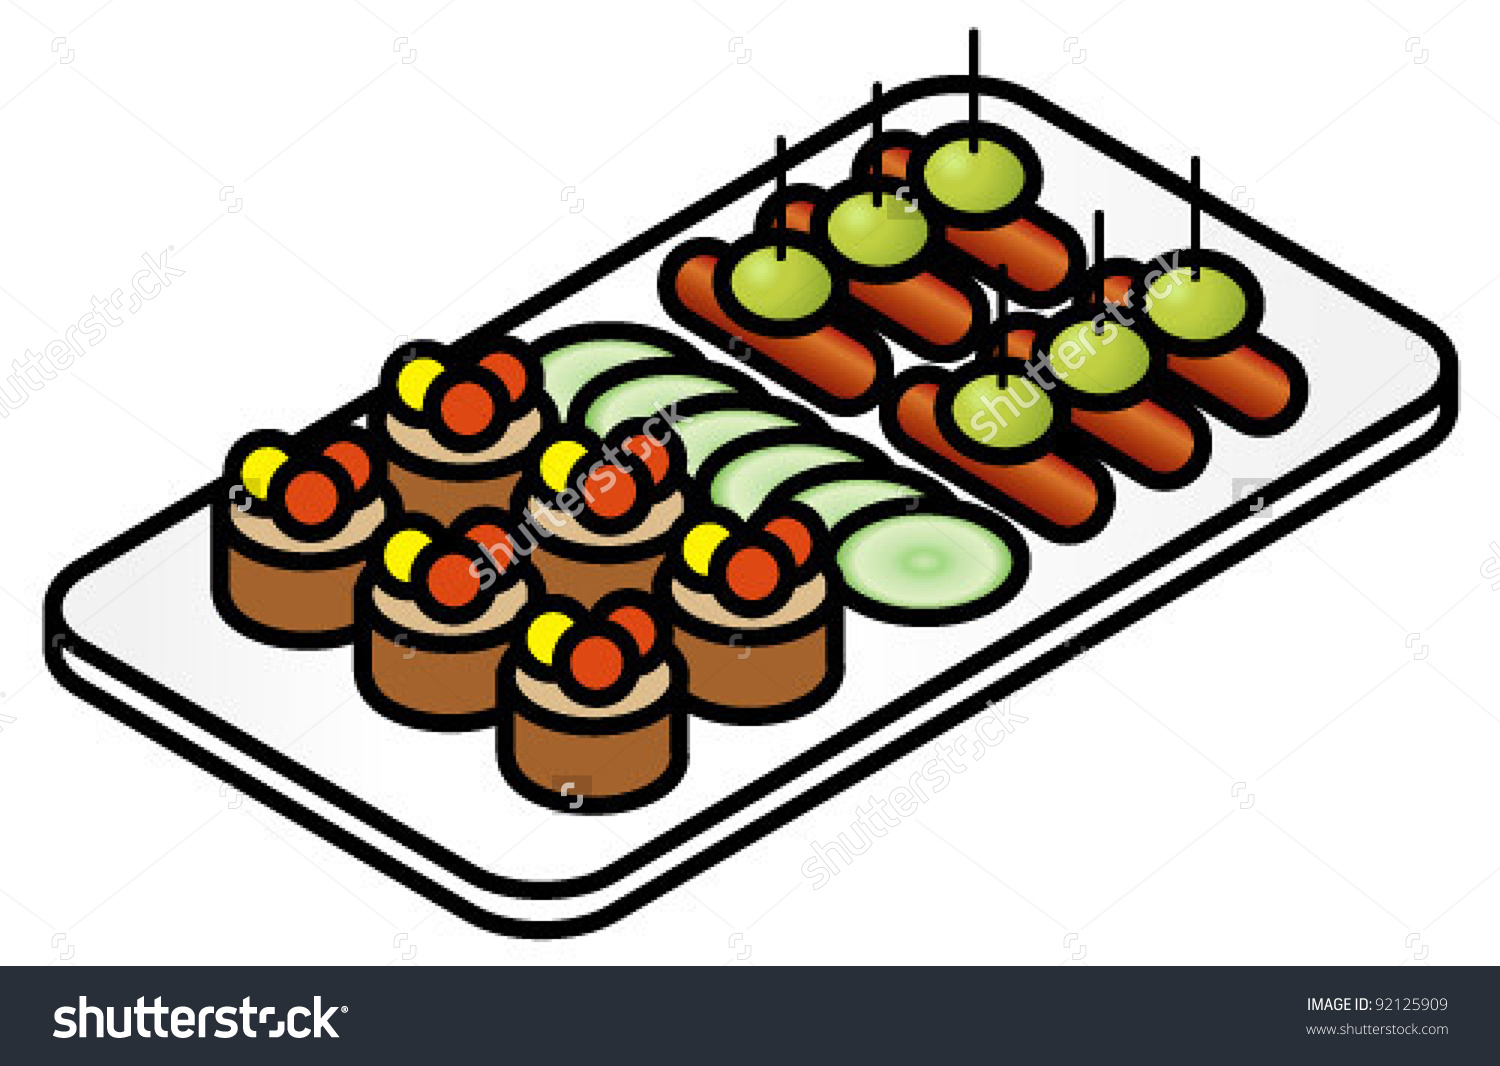 iCLIPART Vector Image Canapes.